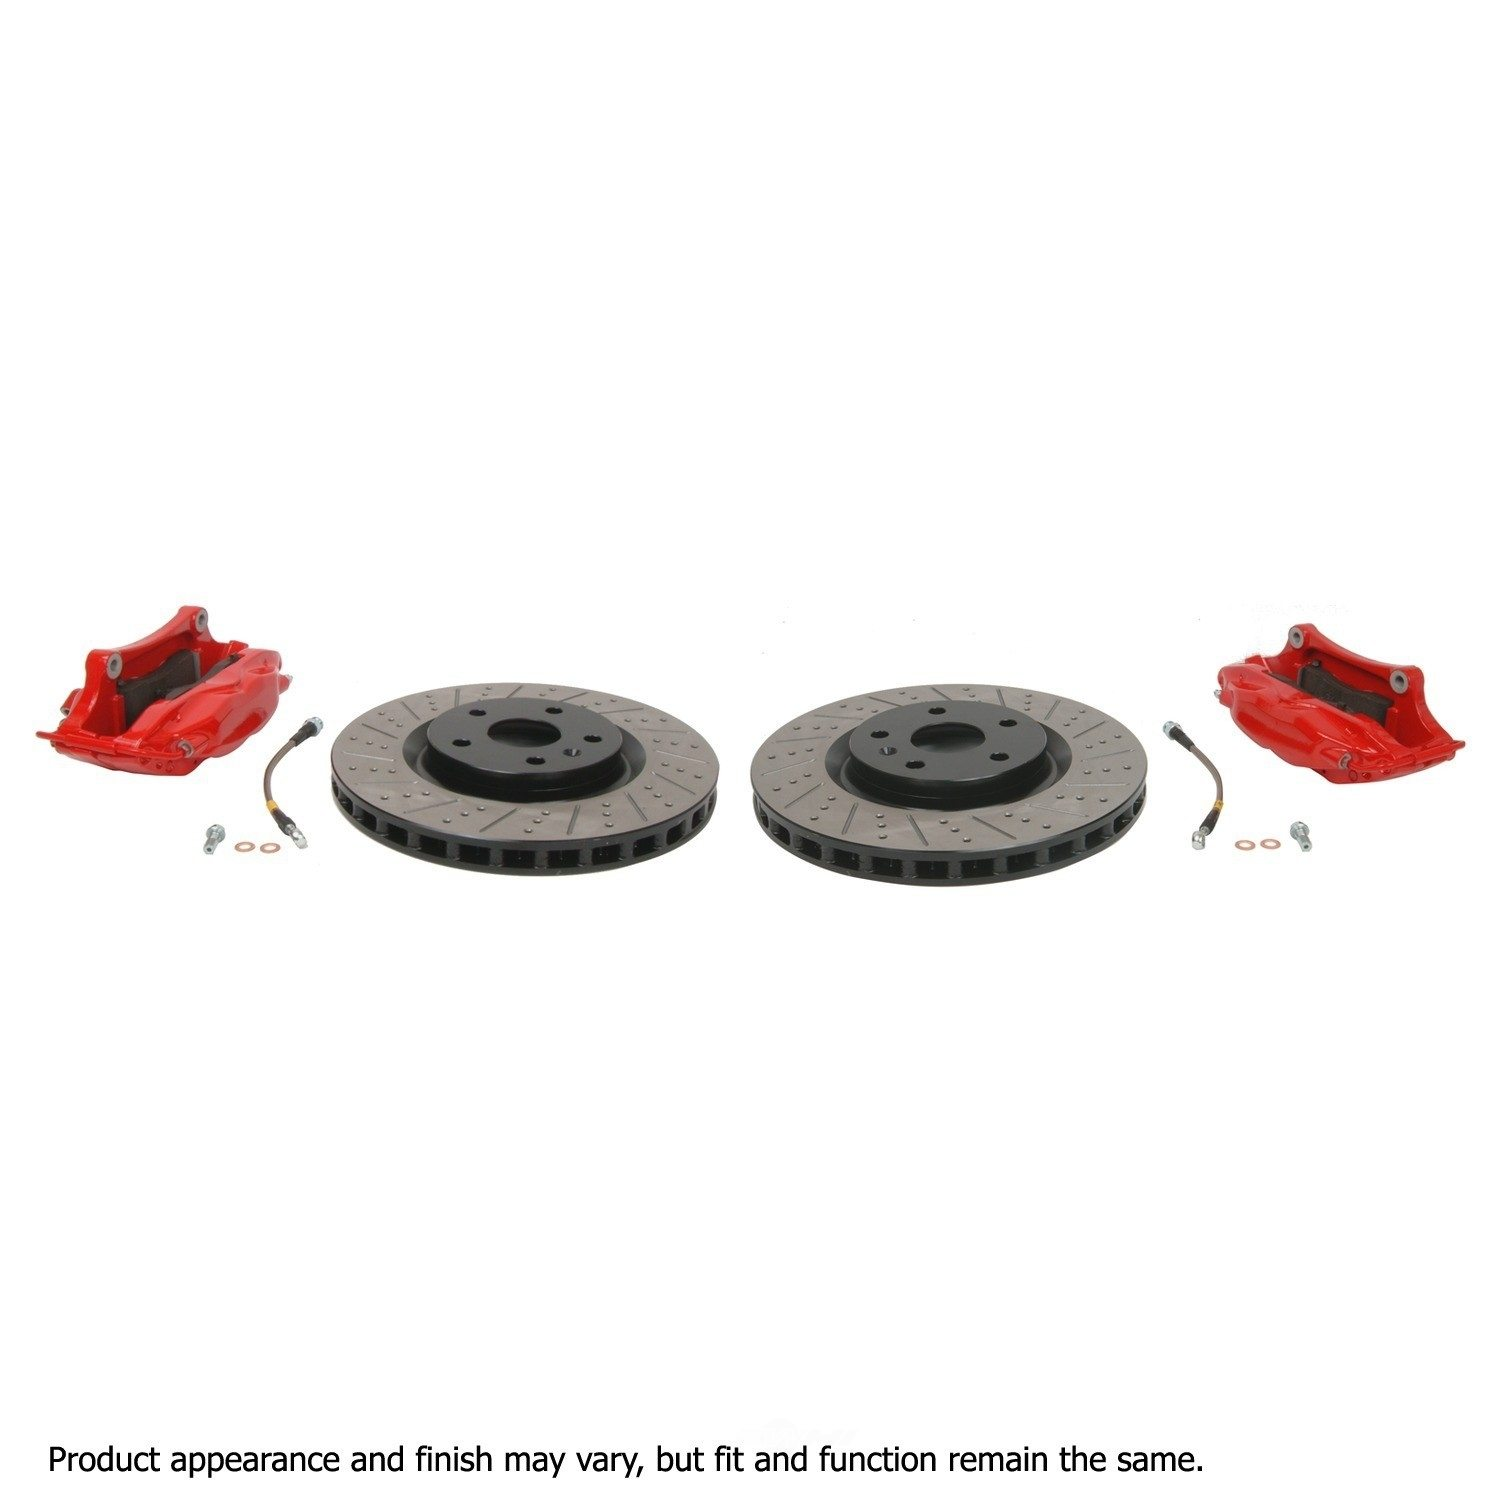 CARDONE/A-1 CARDONE - Reman Performance Brake Upgrade Kit (Front) - A1C 2B-9008XR